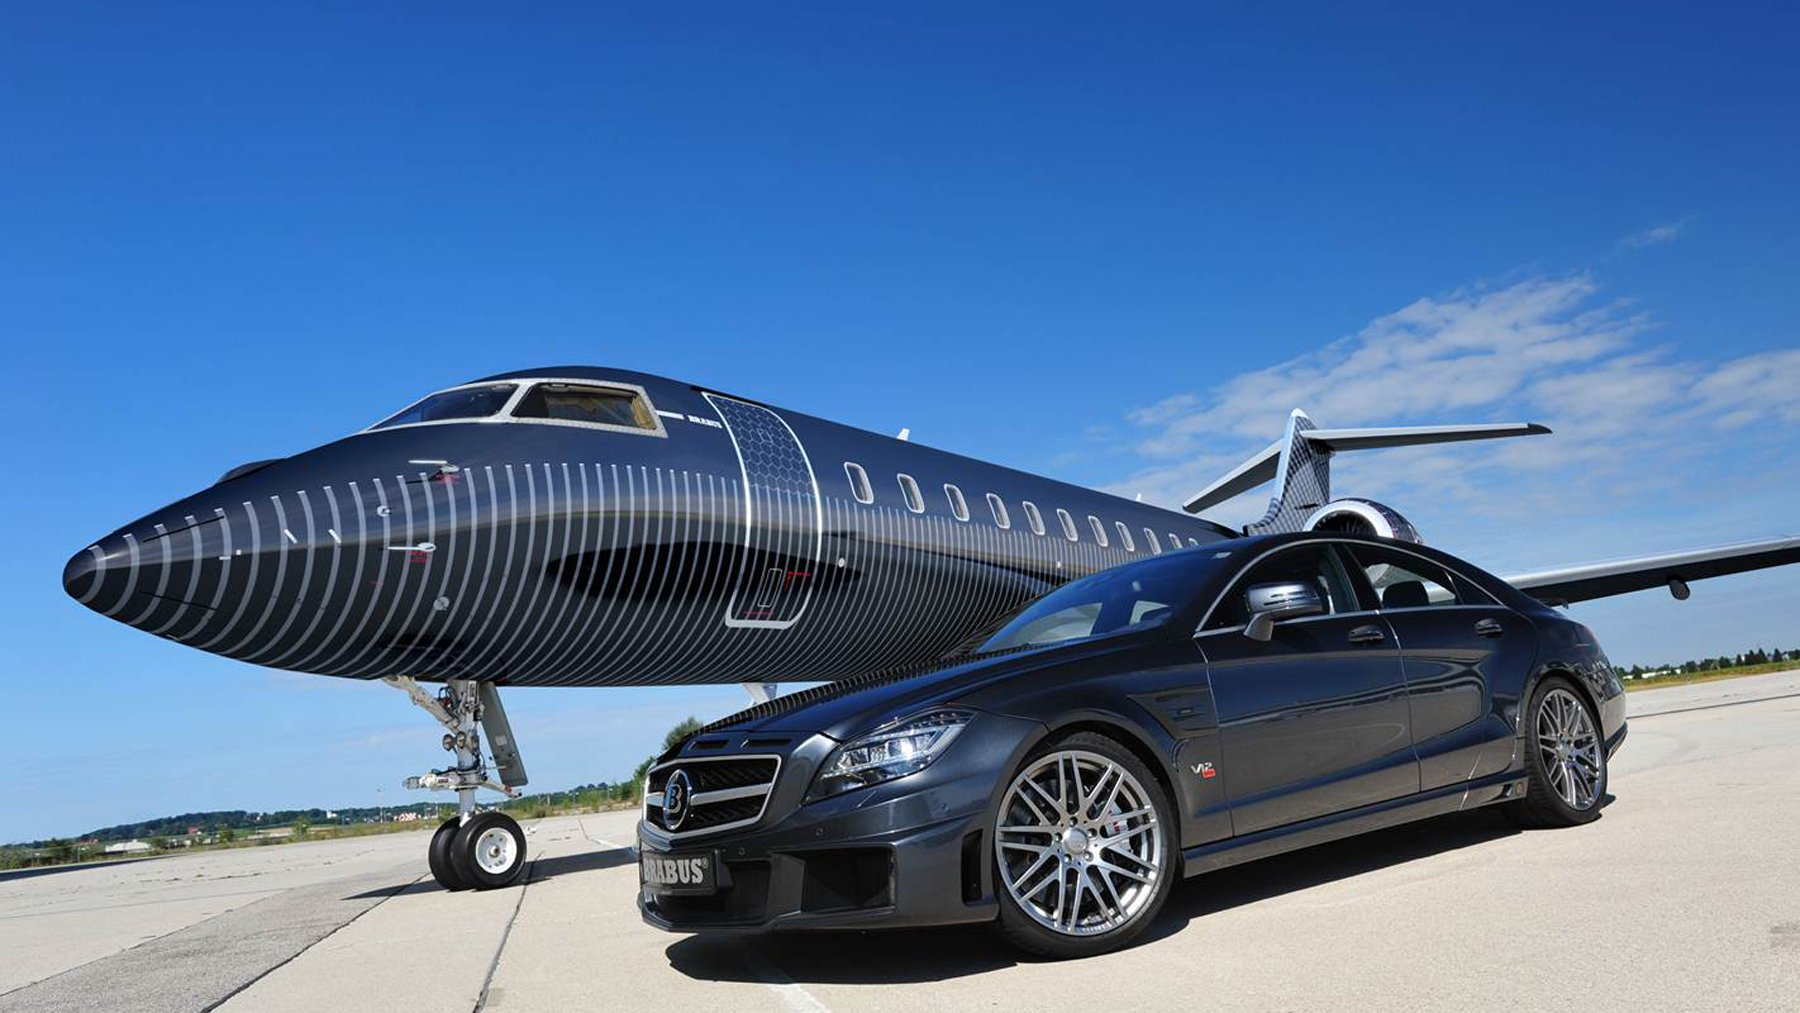 El lujo de volar con Brabus Private aviation